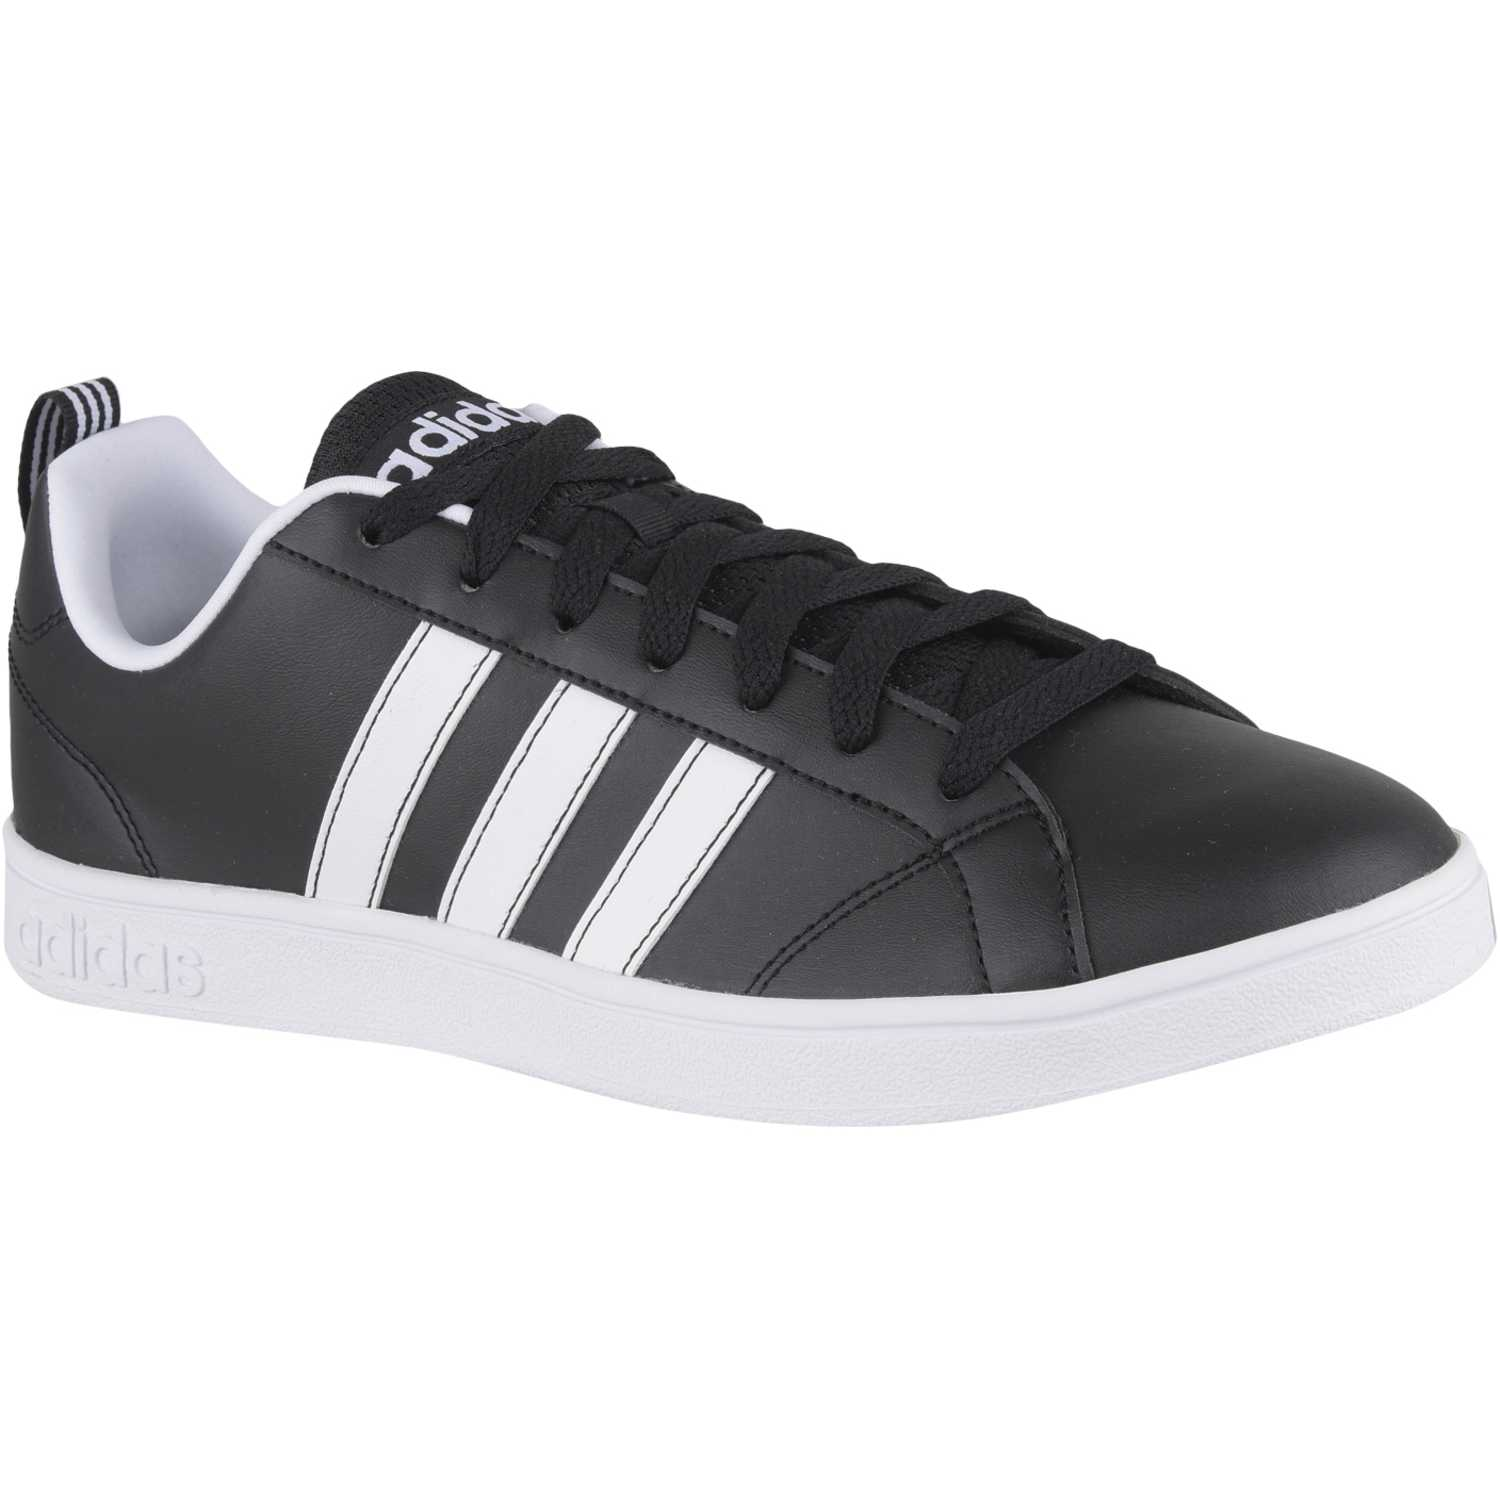 sports shoes 64c2e 8bfca Zapatilla de Hombre adidas NEO Negro   blanco vs advantage